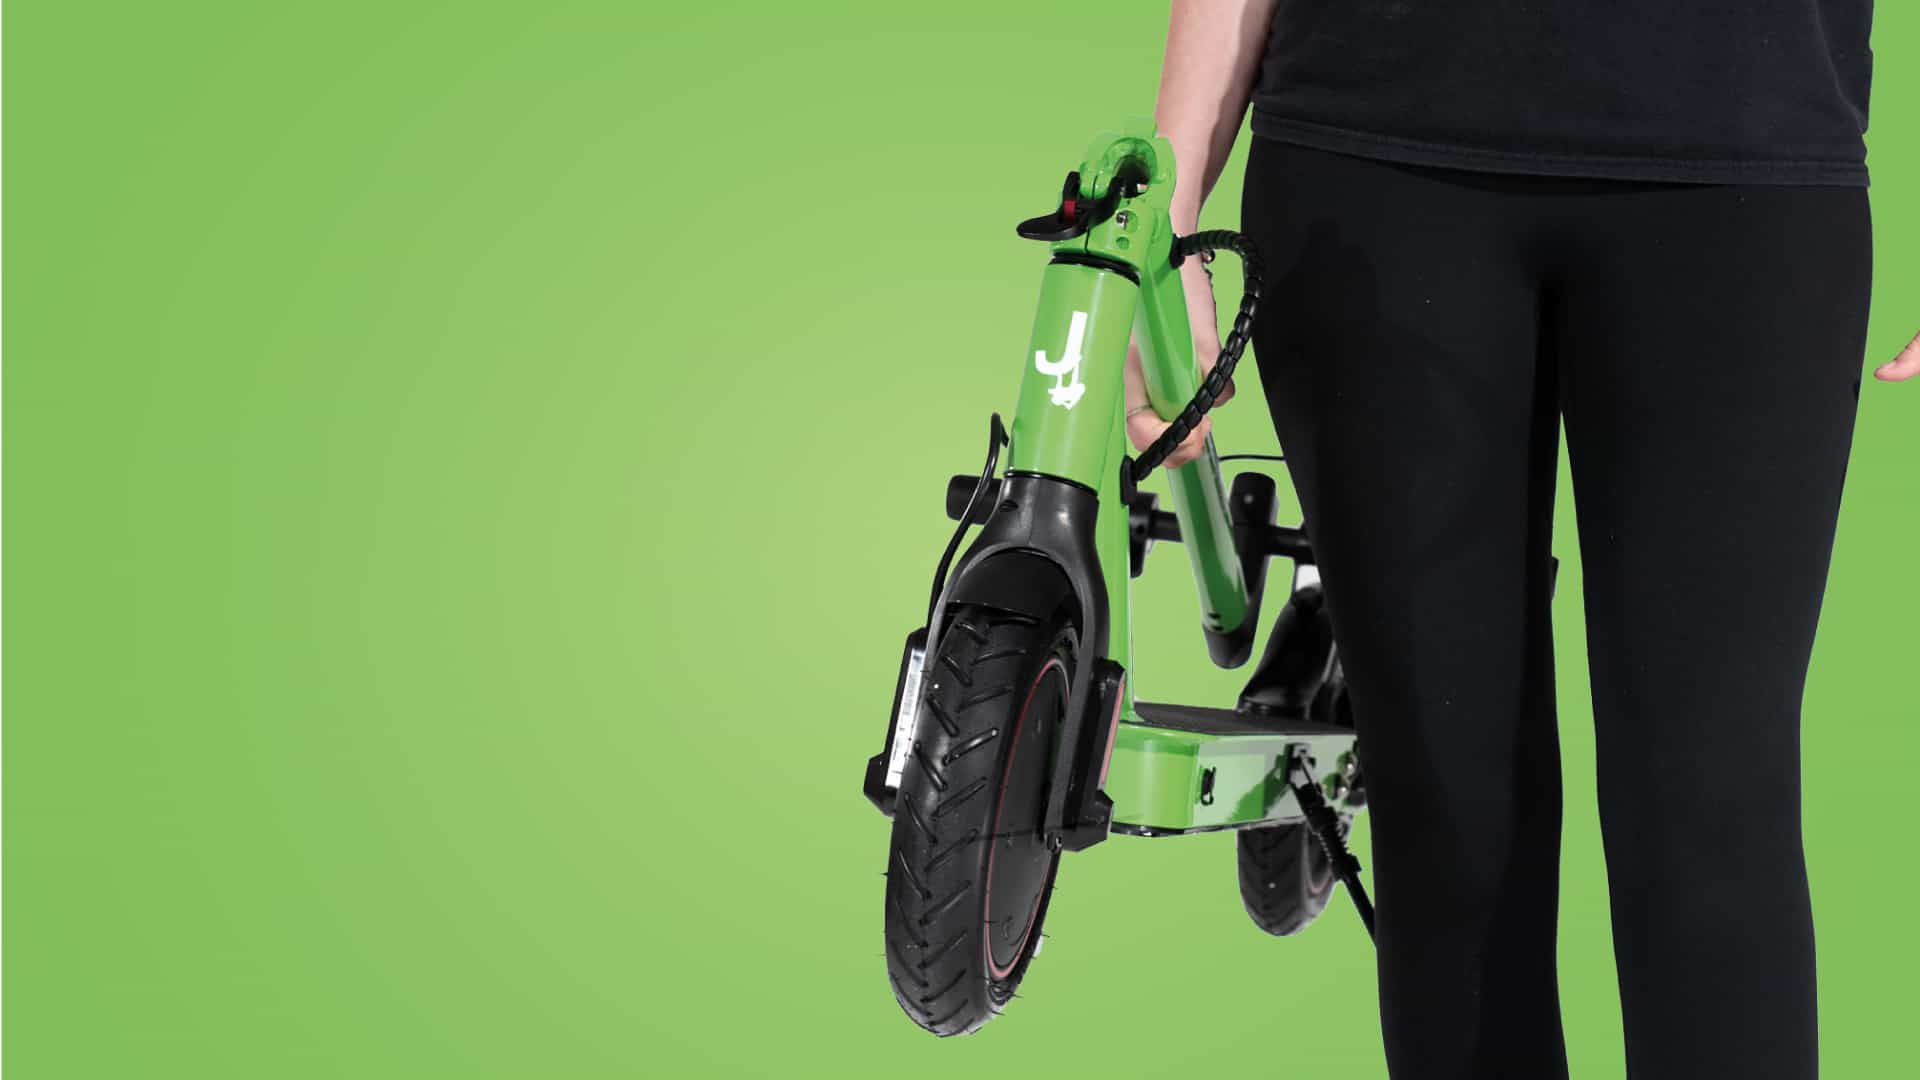 Enter-the-Electric-Jungle-e-scooter-Giveaway